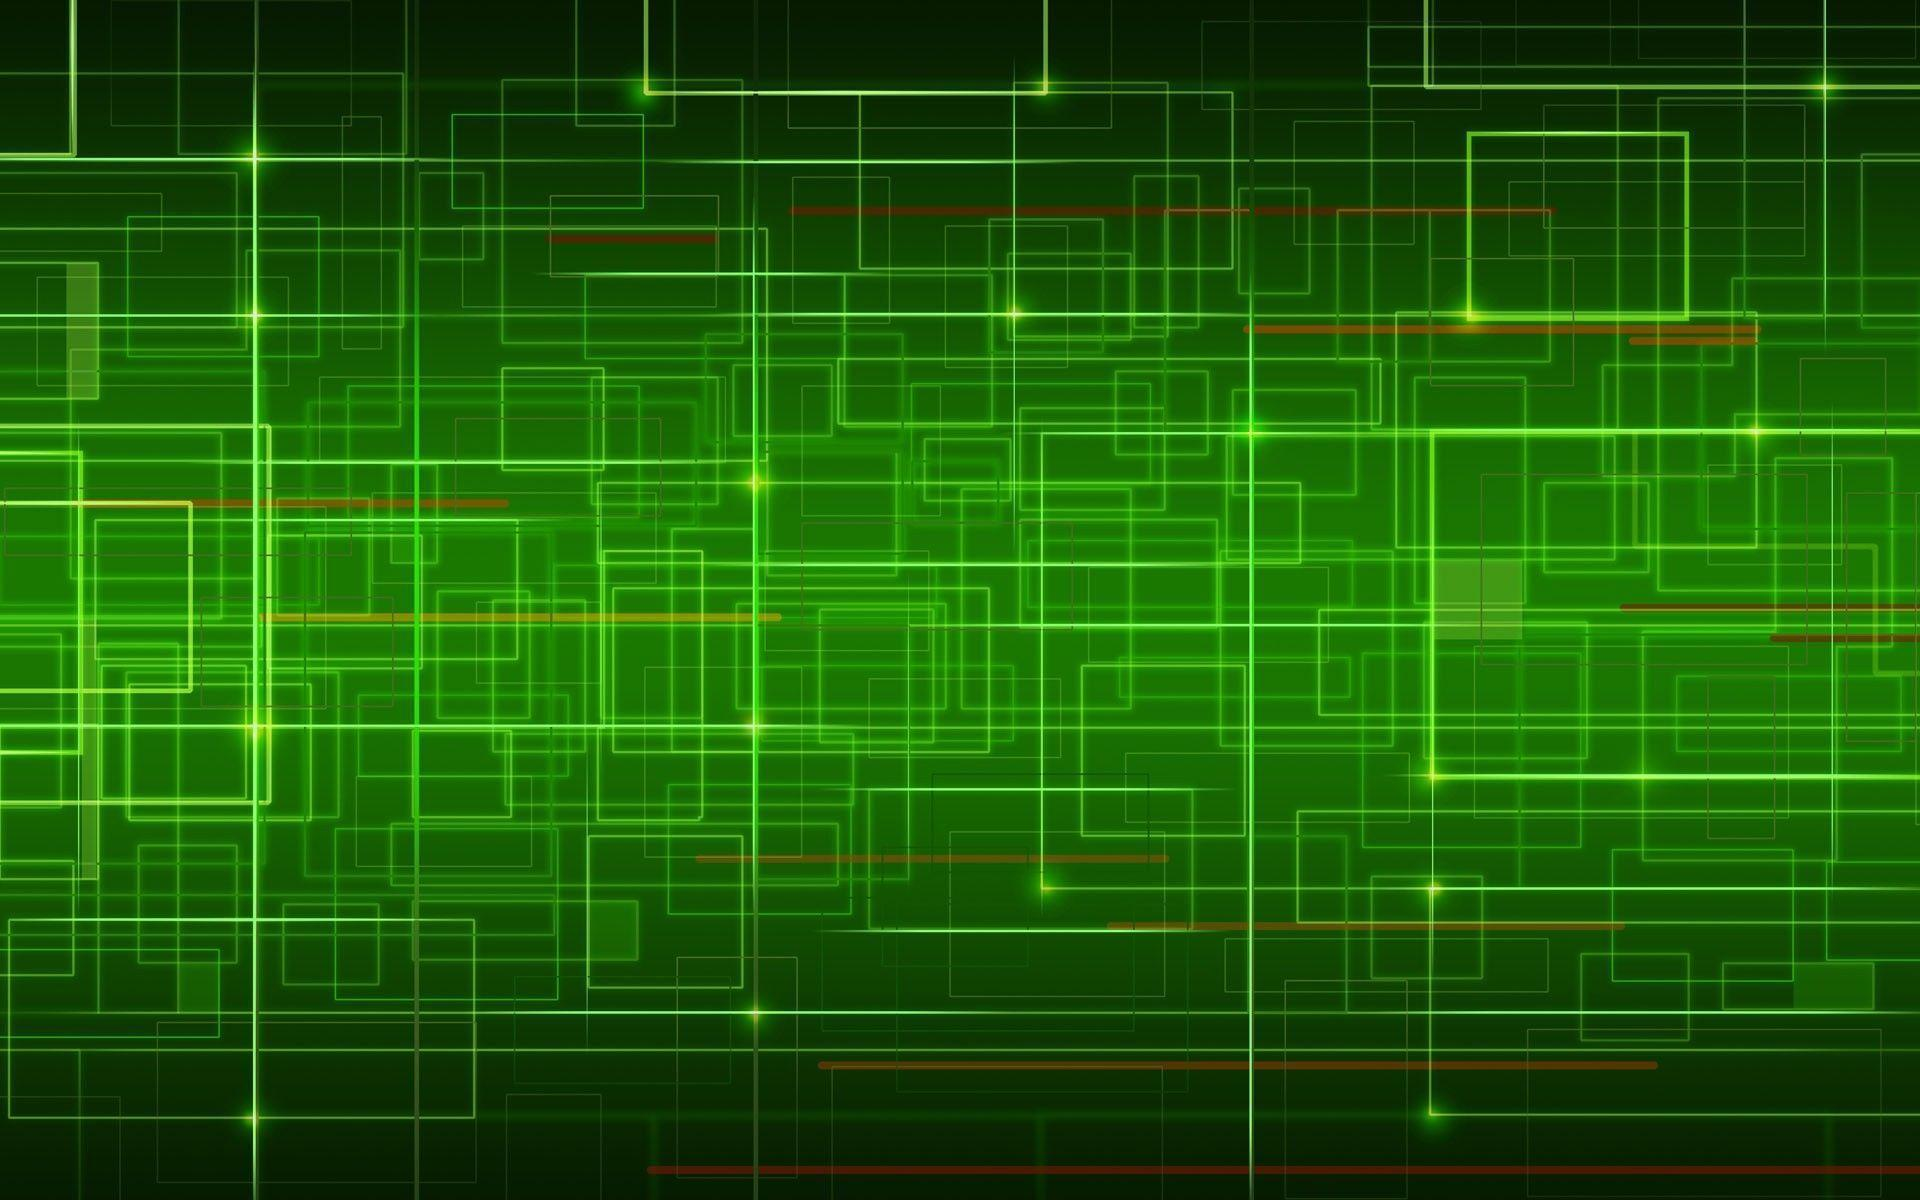 Green Backgrounds Wallpapers